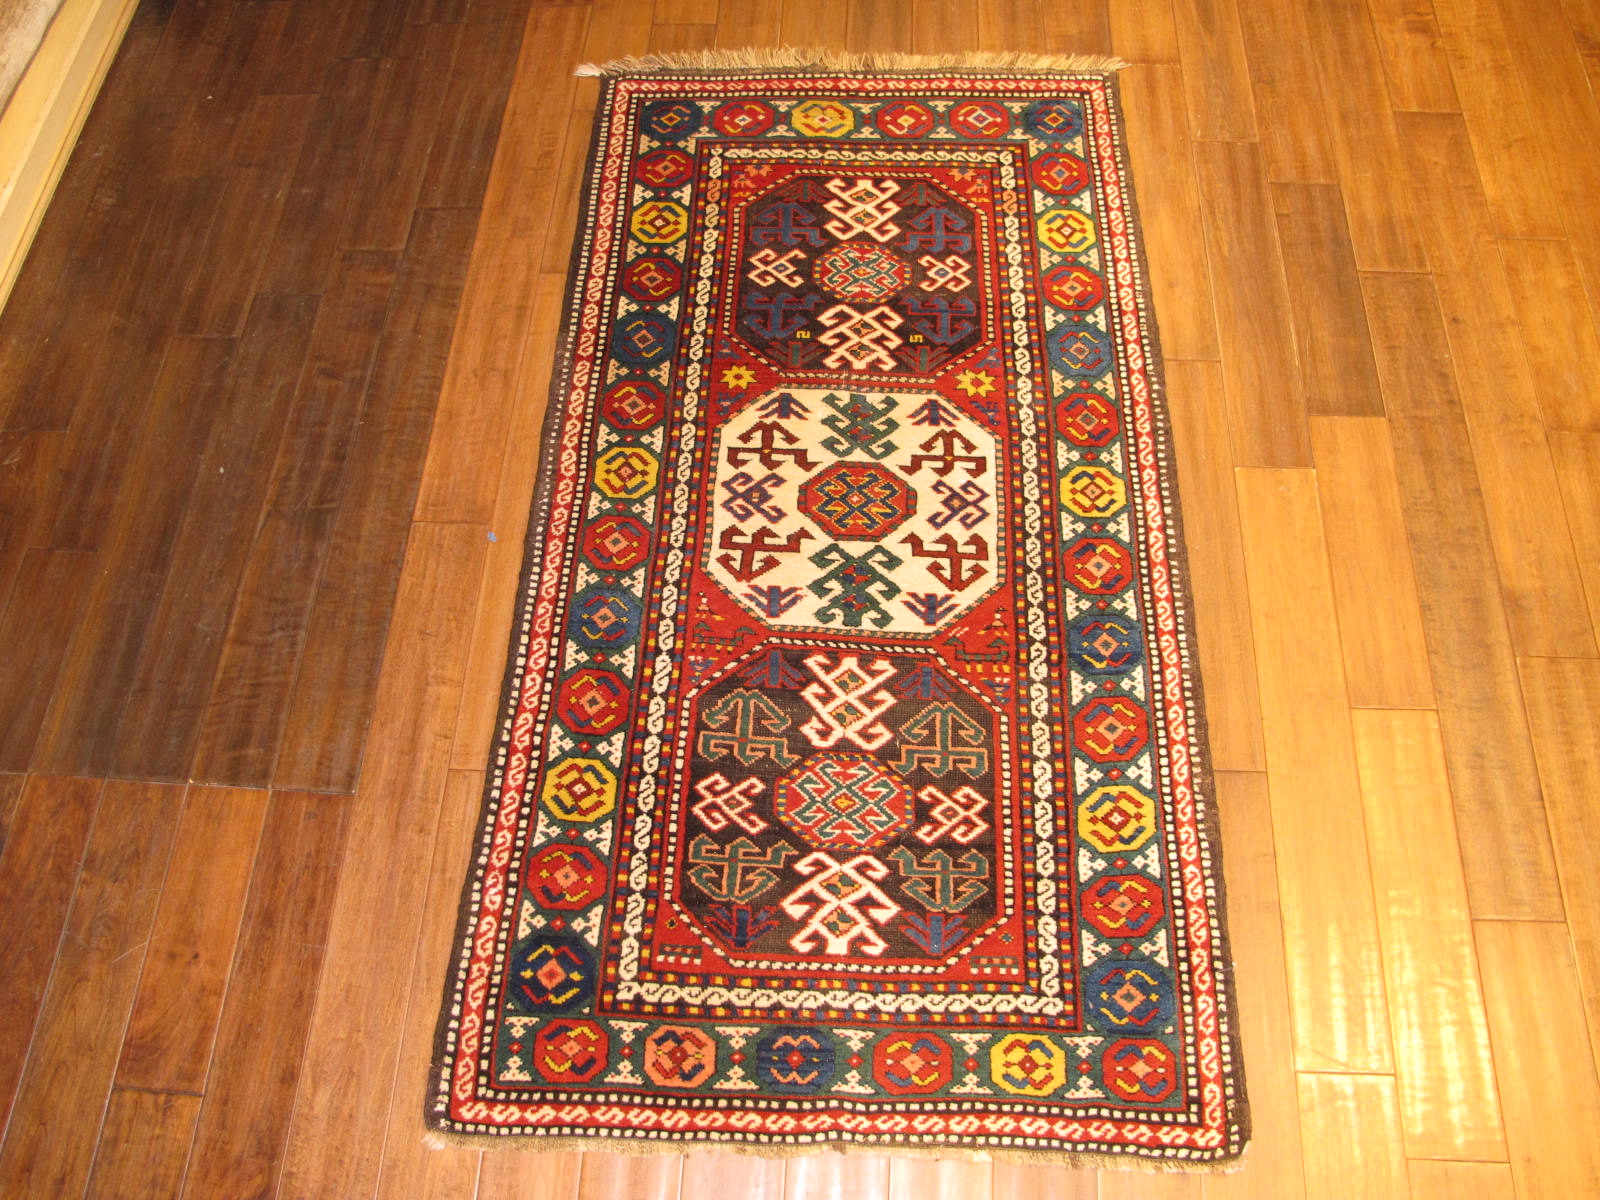 Kazak Rug | Caucasus | Antique, C. 1900